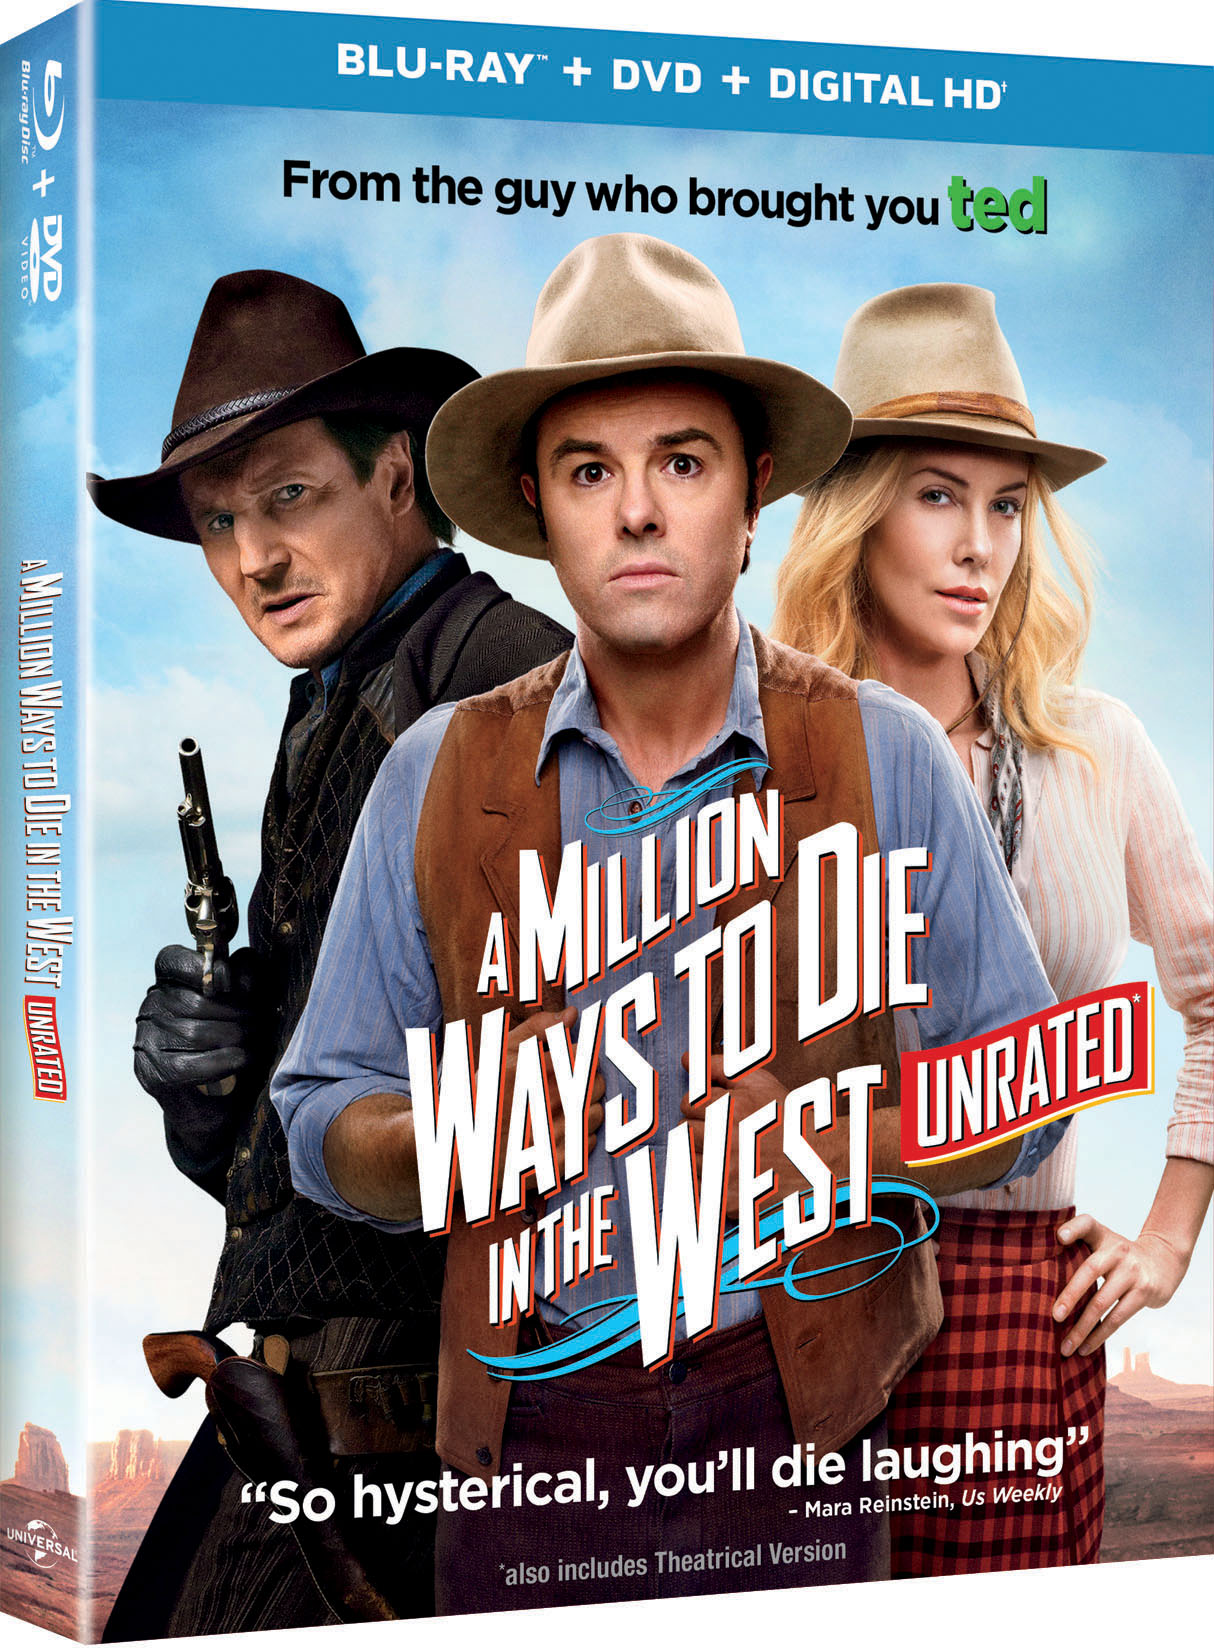 A Million Ways to Die in the West blu-ray